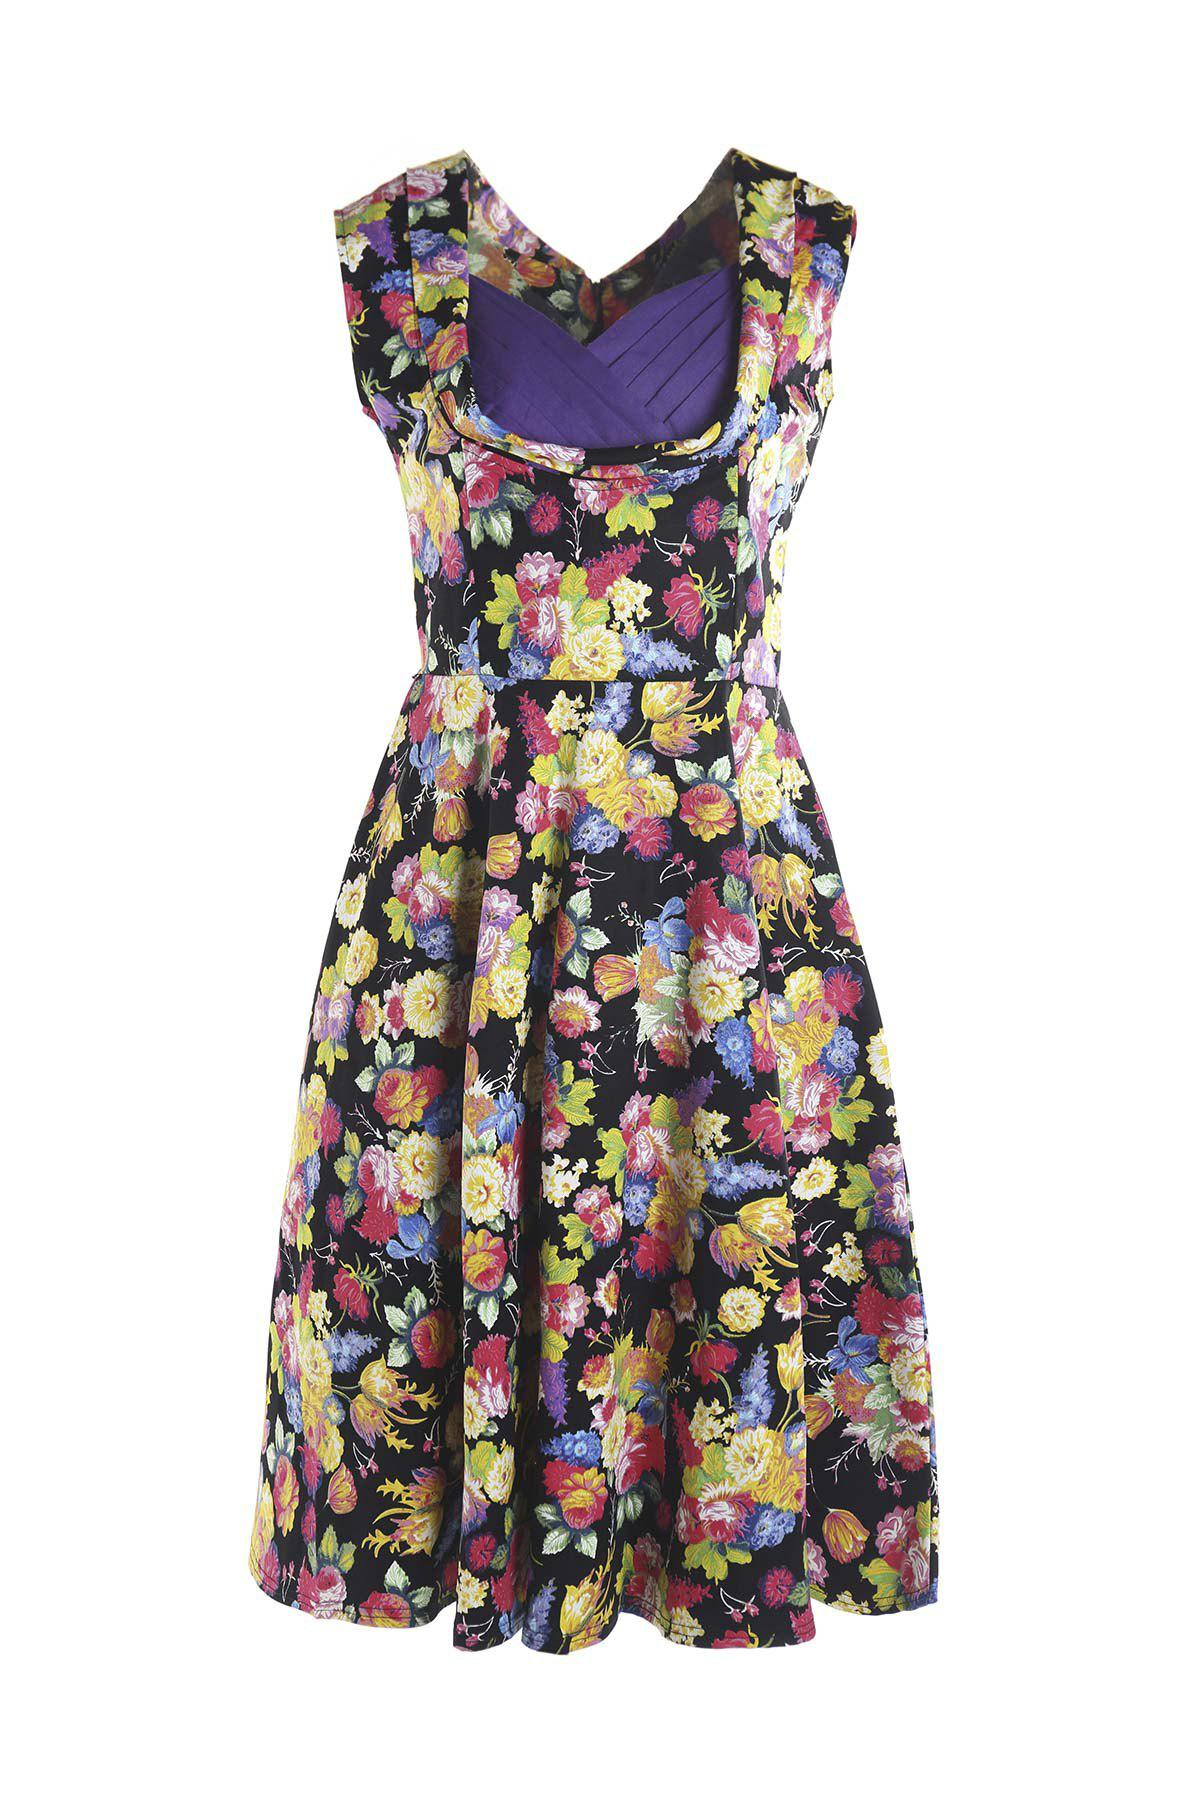 Cheap Sweet Style Sweetheart Neck Sleeveless Floral Print Women's Dress